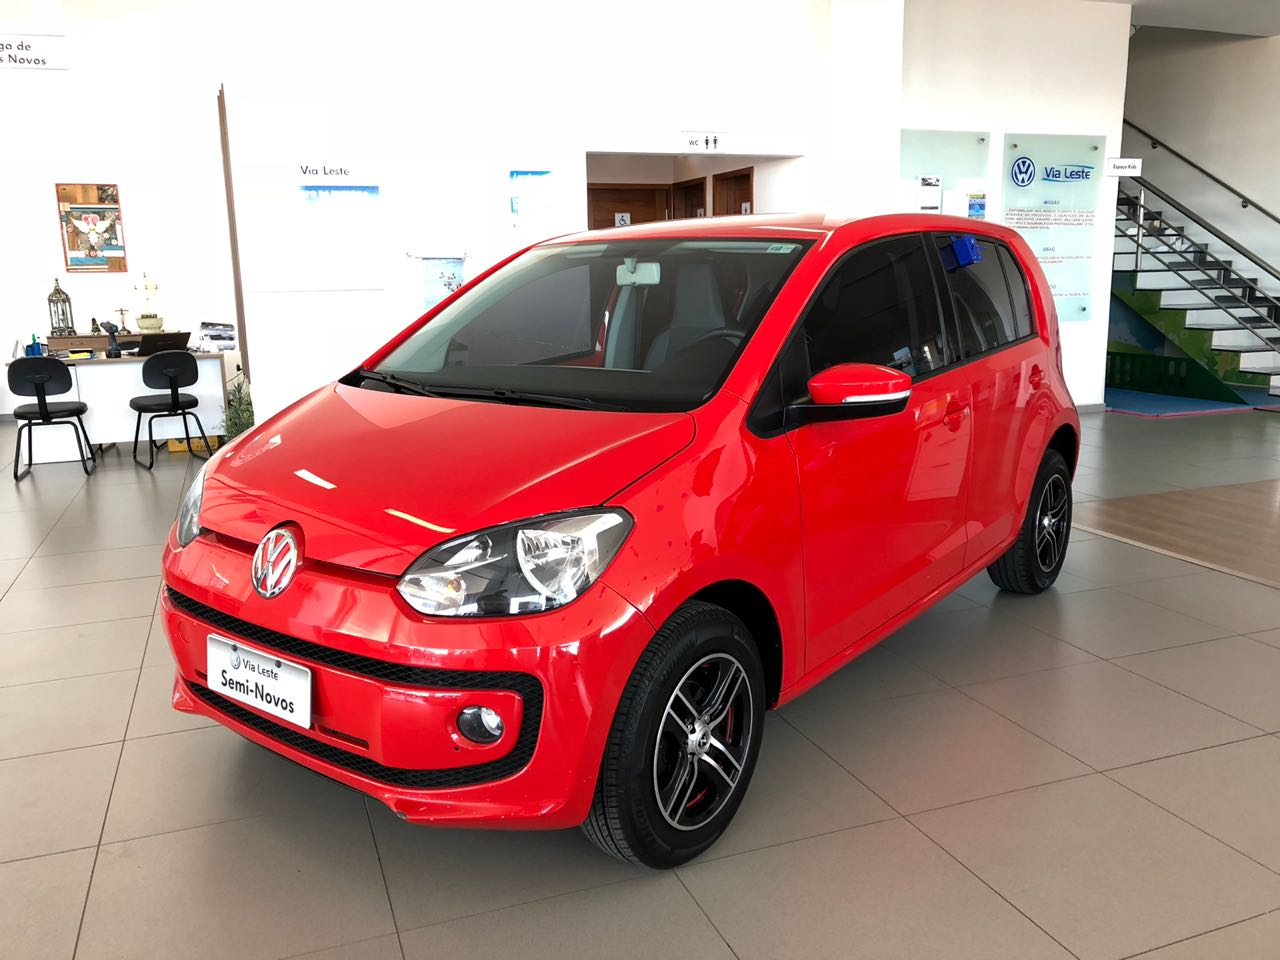 VOLKSWAGEN UP MOVE<br>R$ 32.900,00